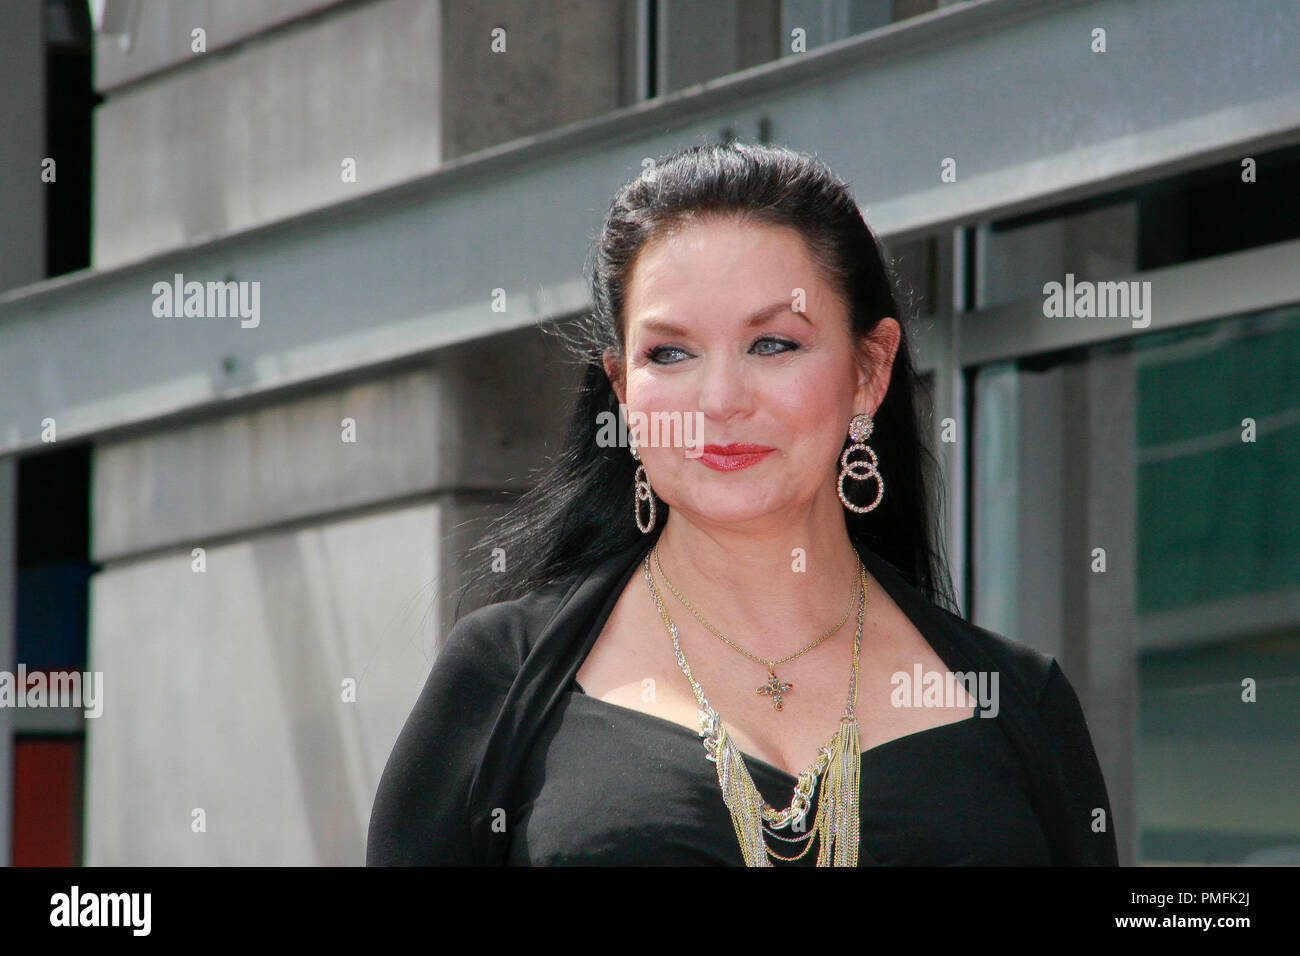 Crystal Gayle at the Hollywood Chamber of Commerce ceremony to honor her with the 2,390th Star on the Hollywood Walk of Fame on Vine Street near Sunset Boulevard in Hollywood, CA, October 2, 2009. Photo by Picturelux File Reference # 30082_08PLX   For Editorial Use Only -  All Rights Reserved - Stock Image